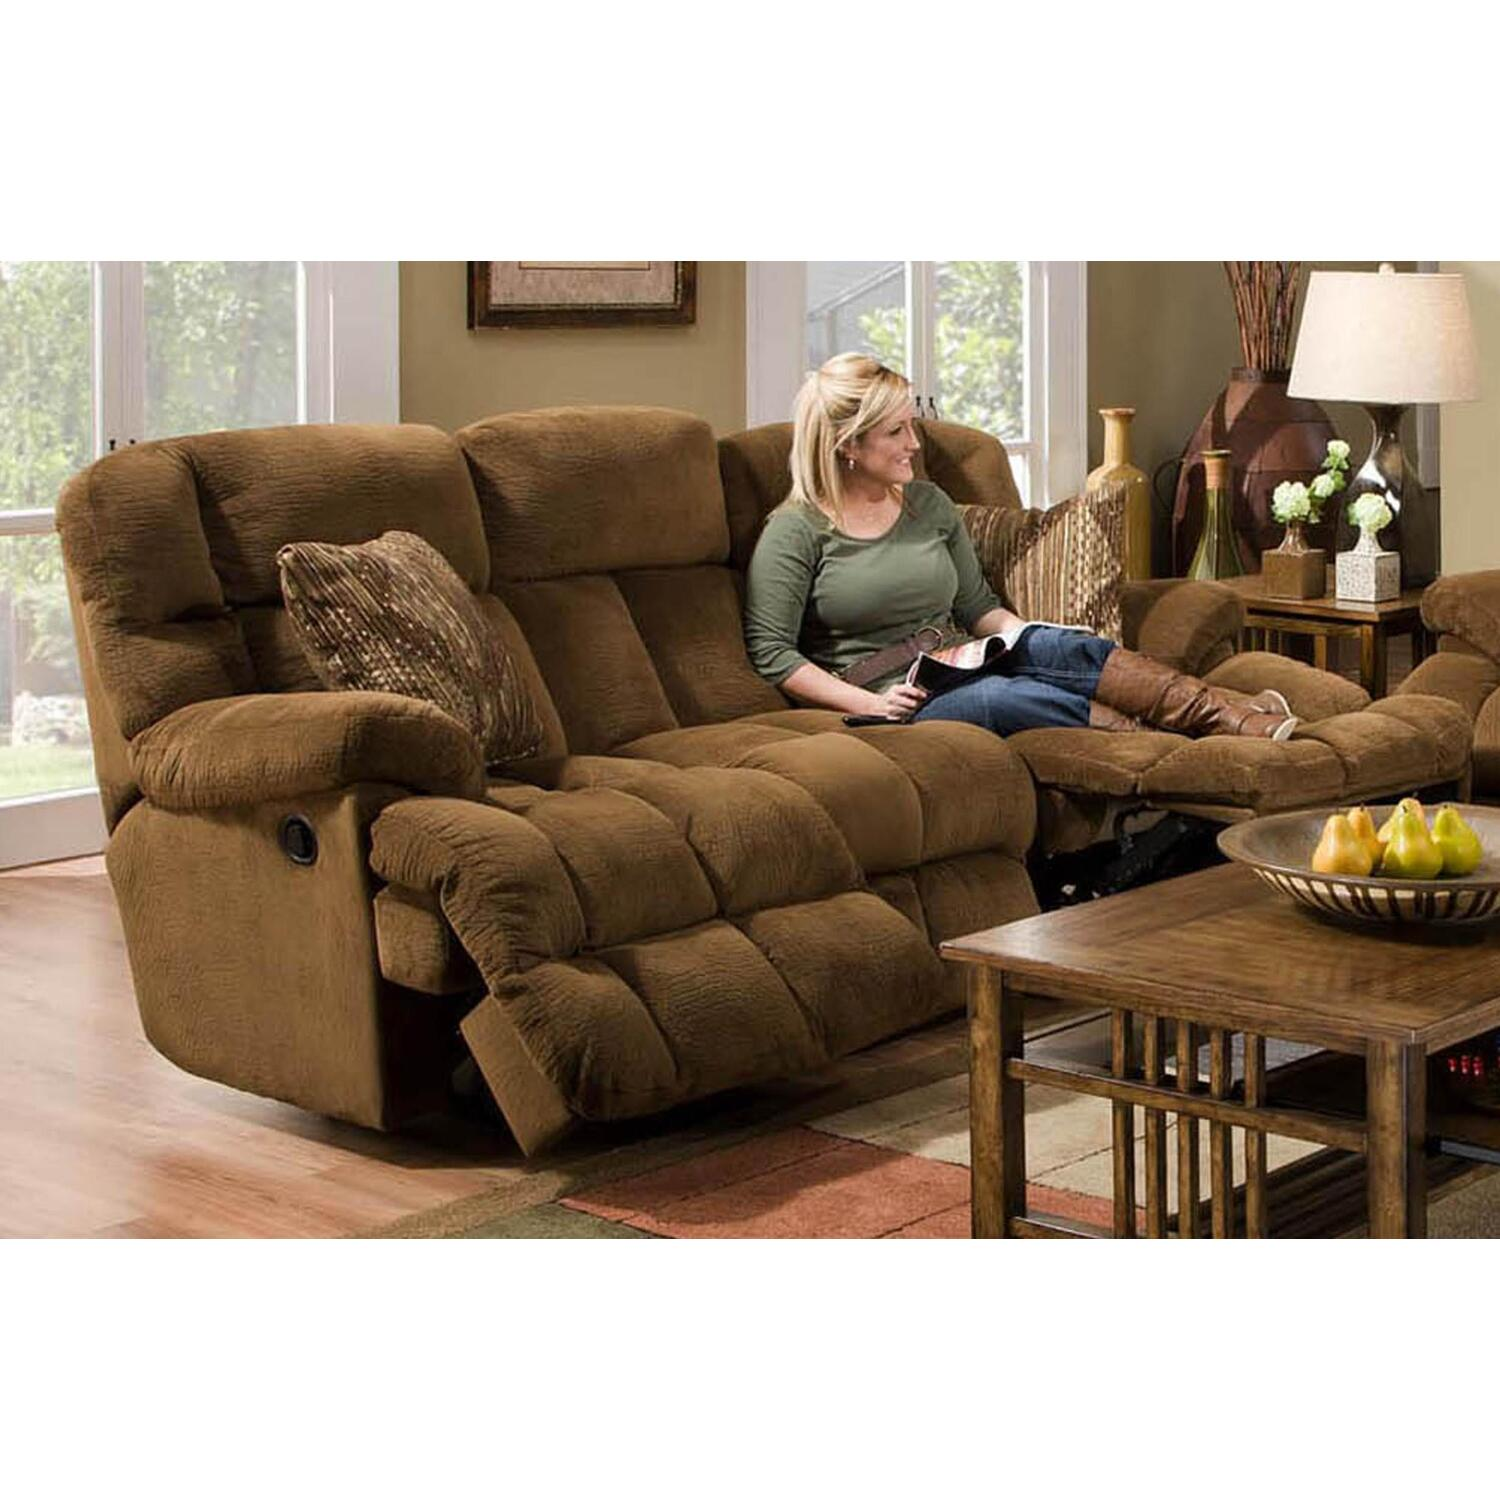 Concord Reclining Sofa  From 107900 to 134900